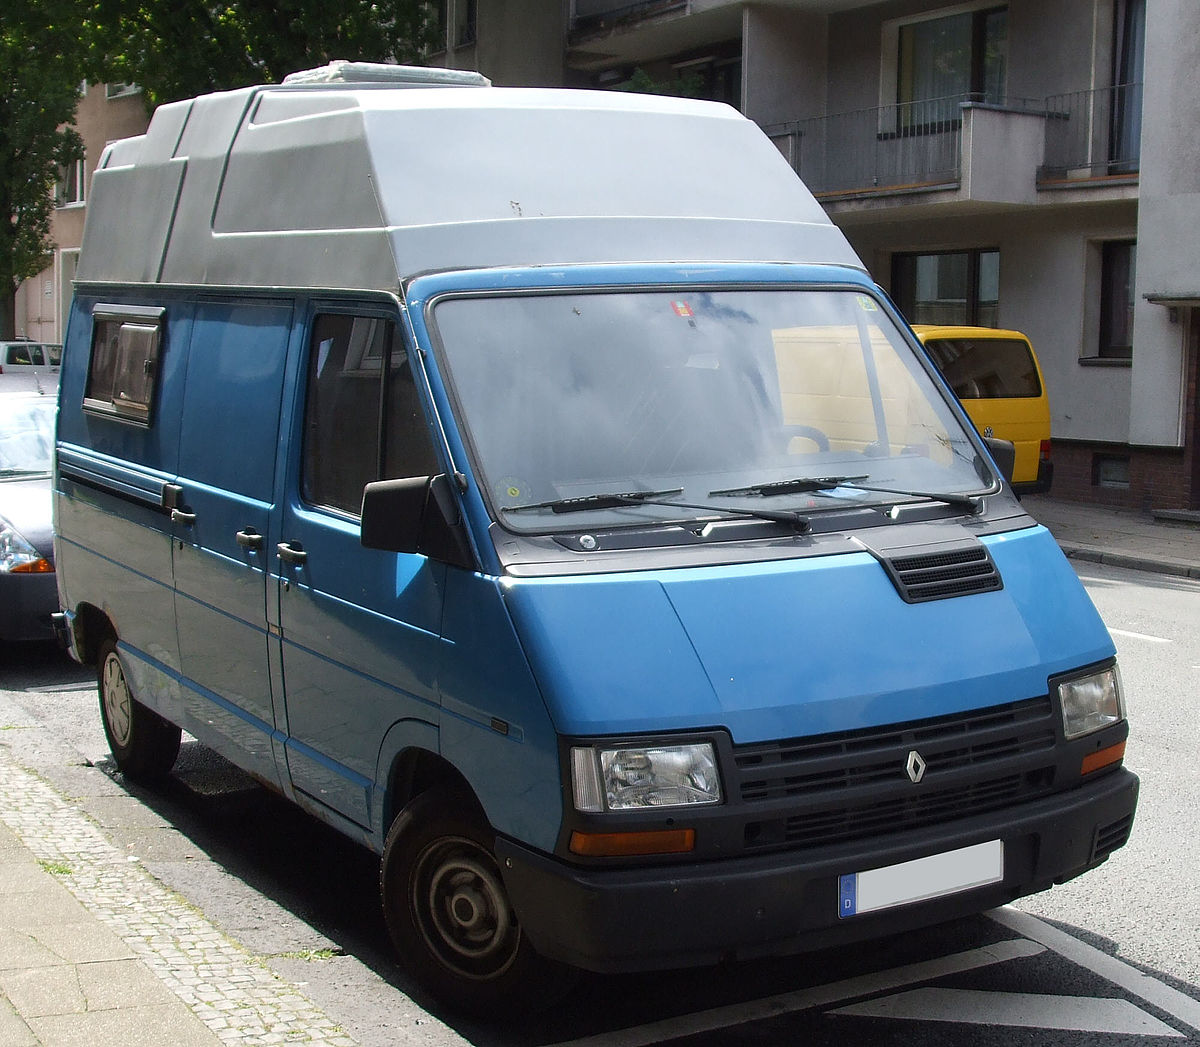 File:Renault Trafic Wohnmobil vr.jpg - Wikimedia Commons